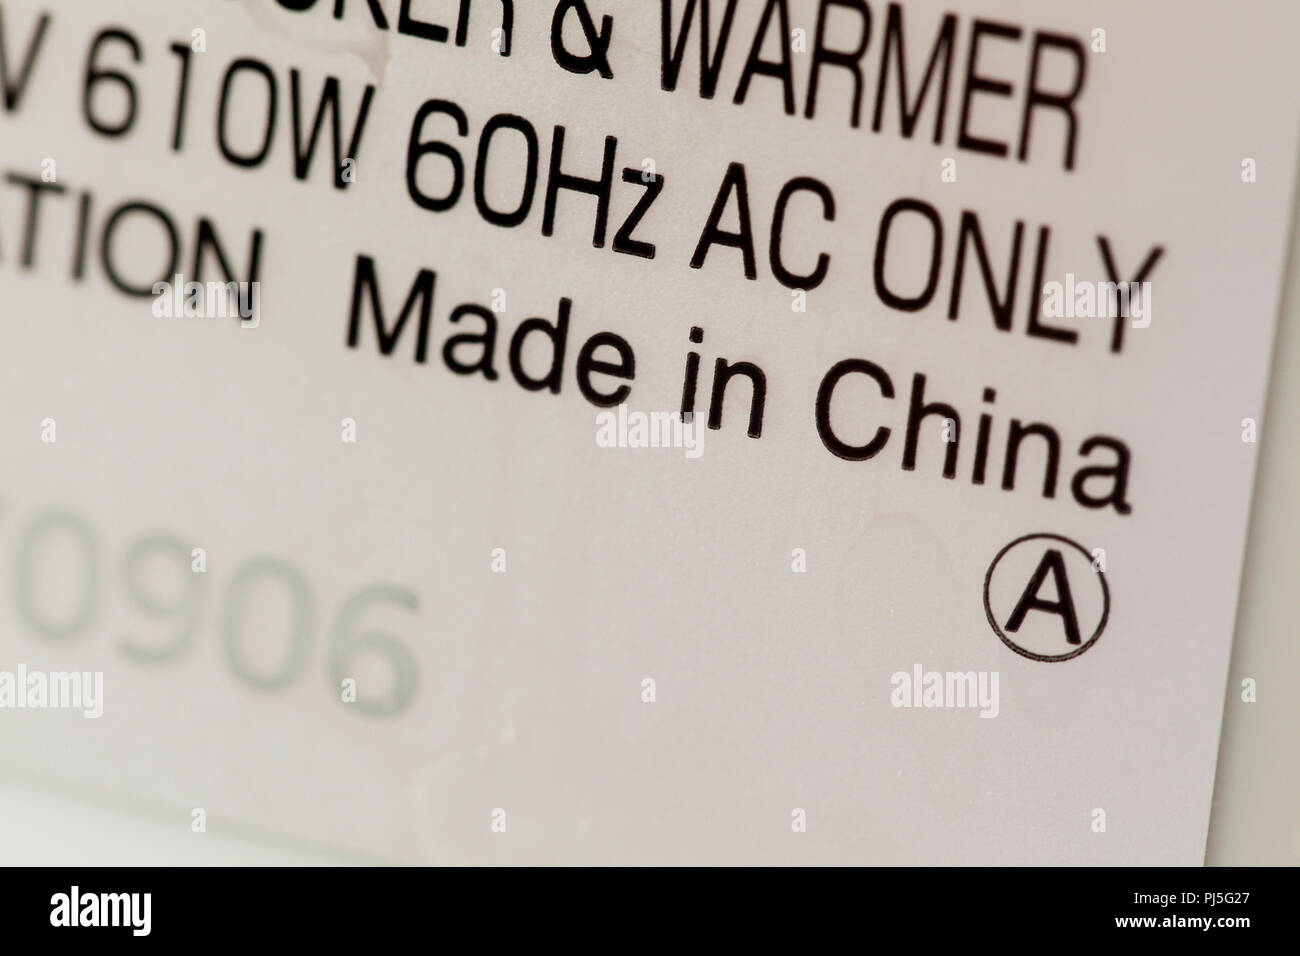 Made in China label on electronics - Stock Image